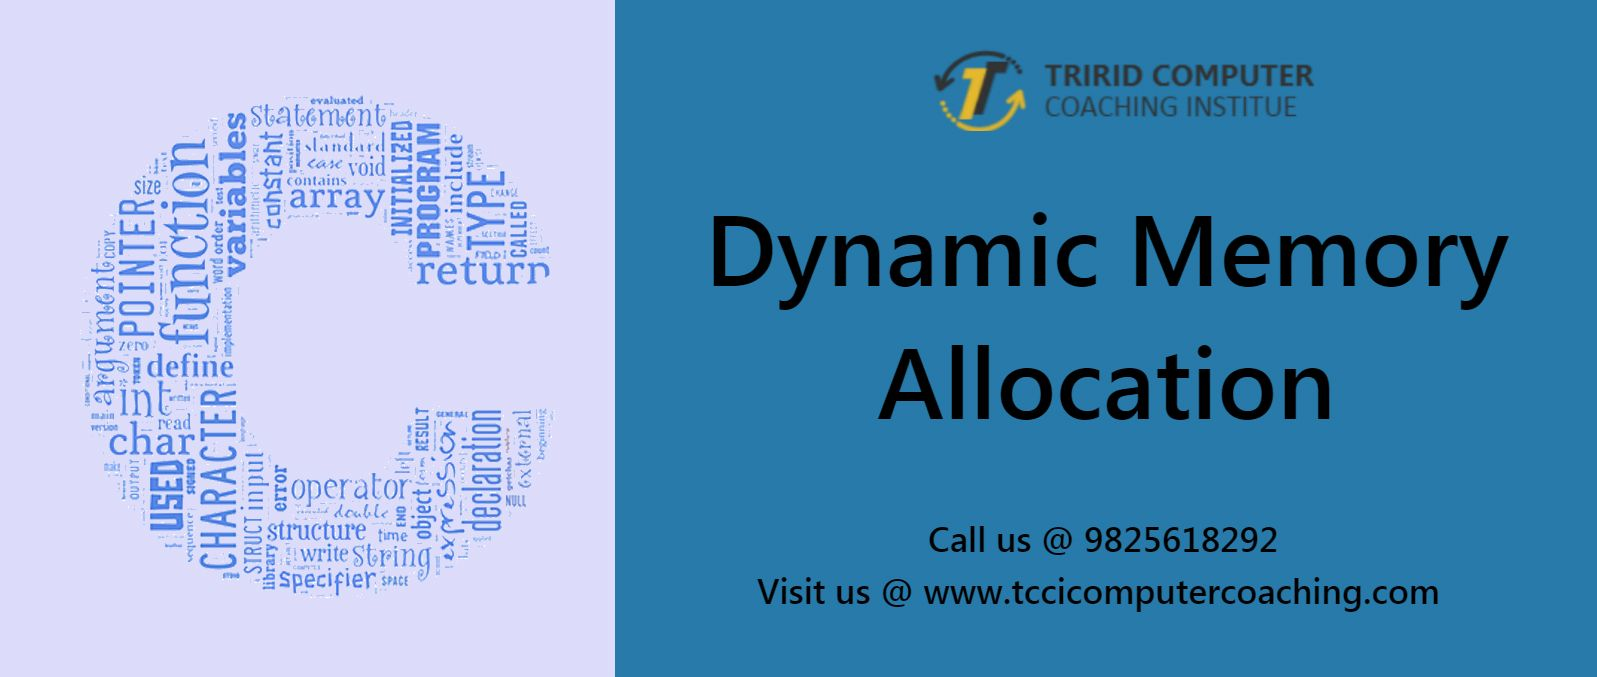 Dynamic Memory Allocation – tccicomputercoaching com